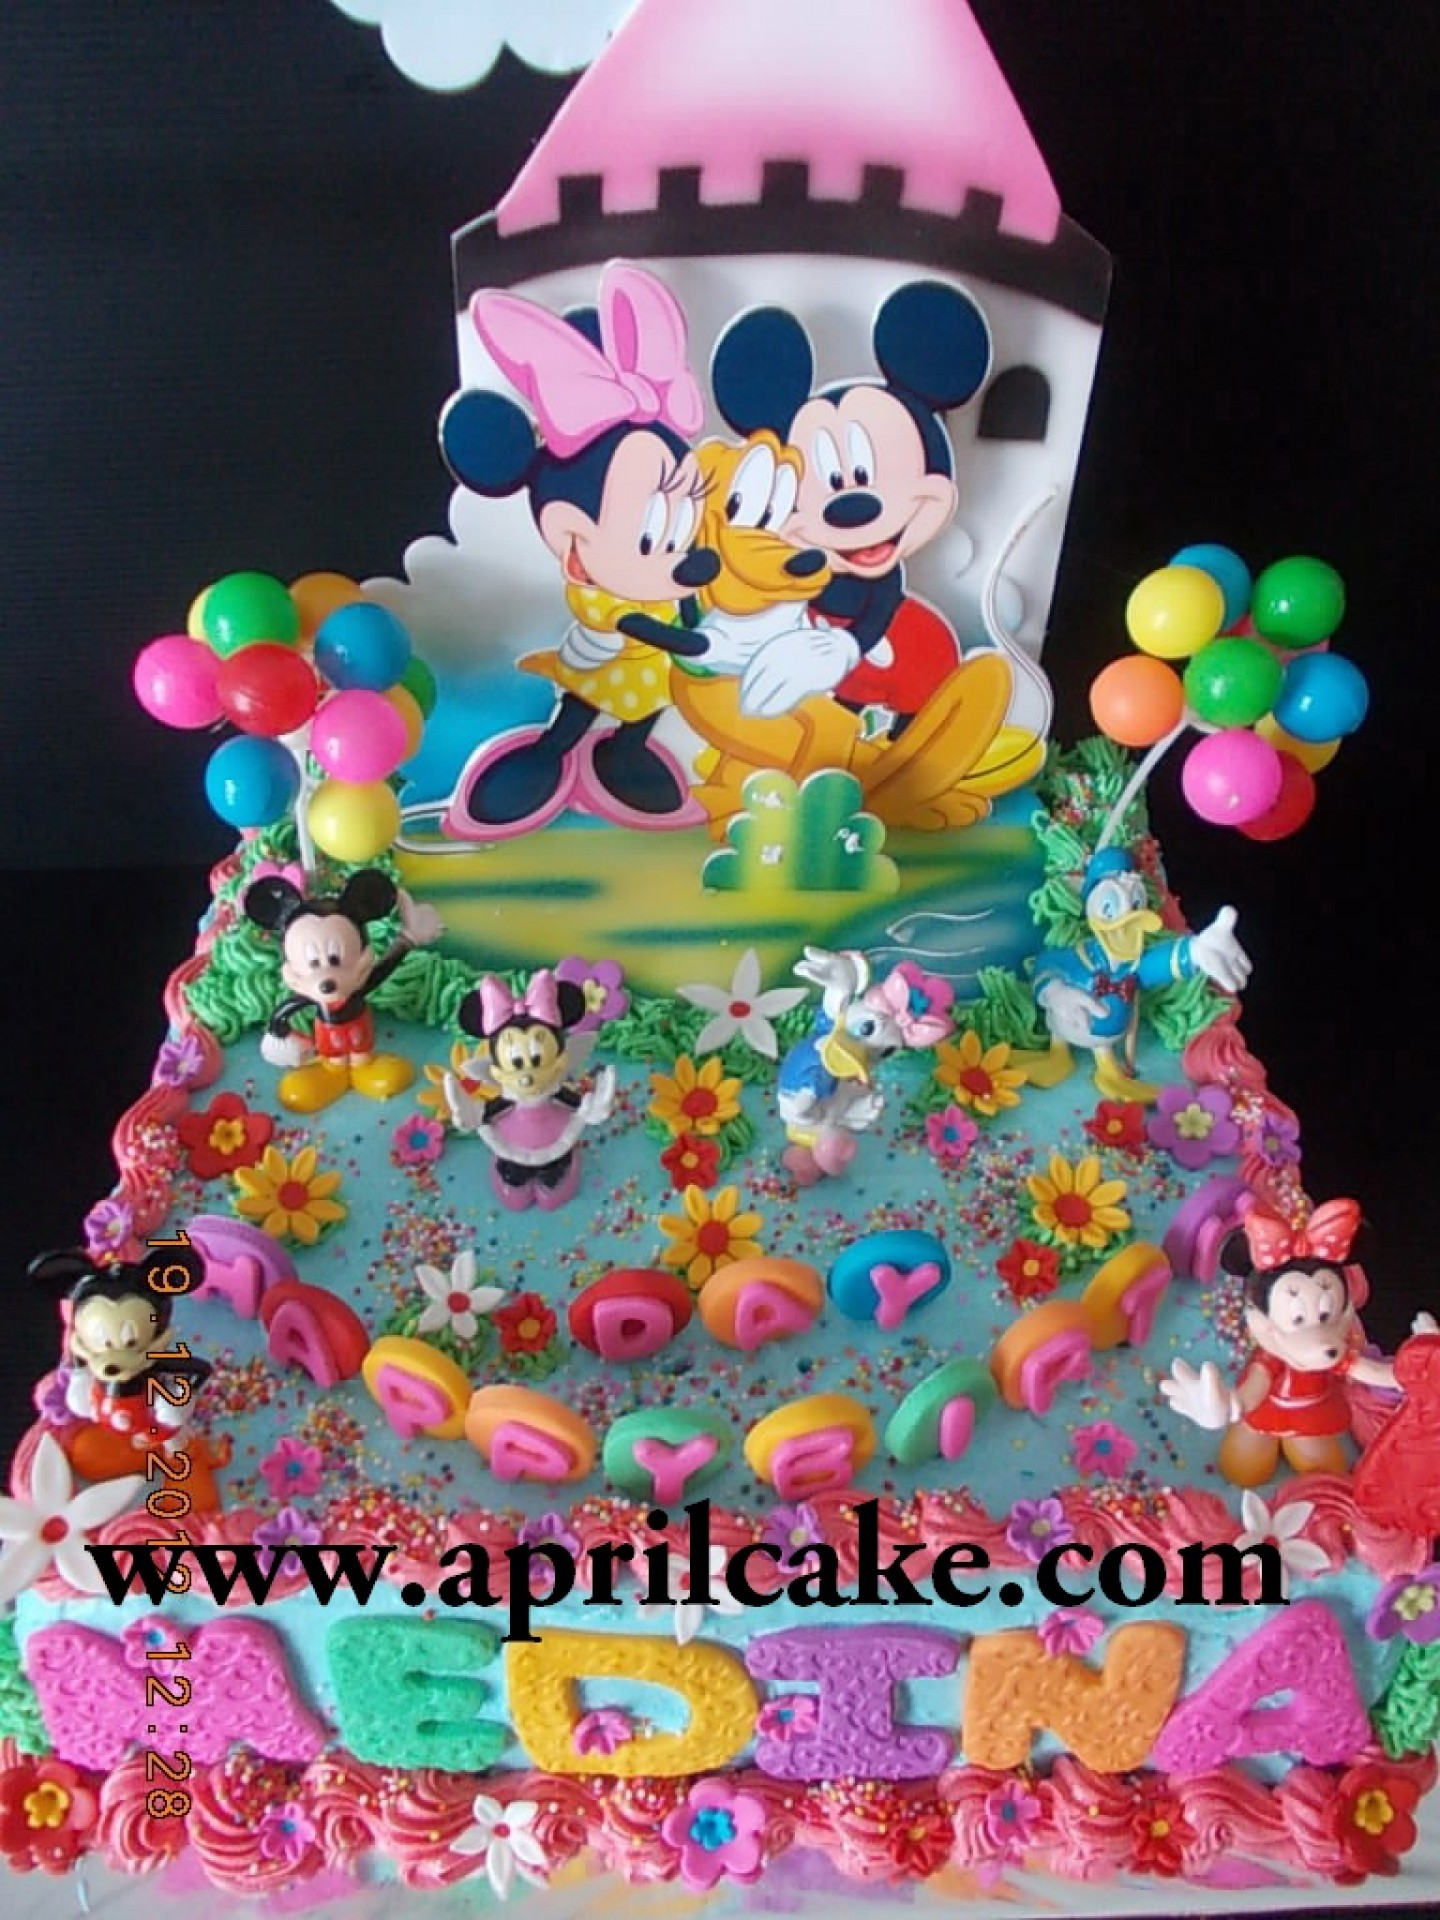 Mickey Mouse April Cake